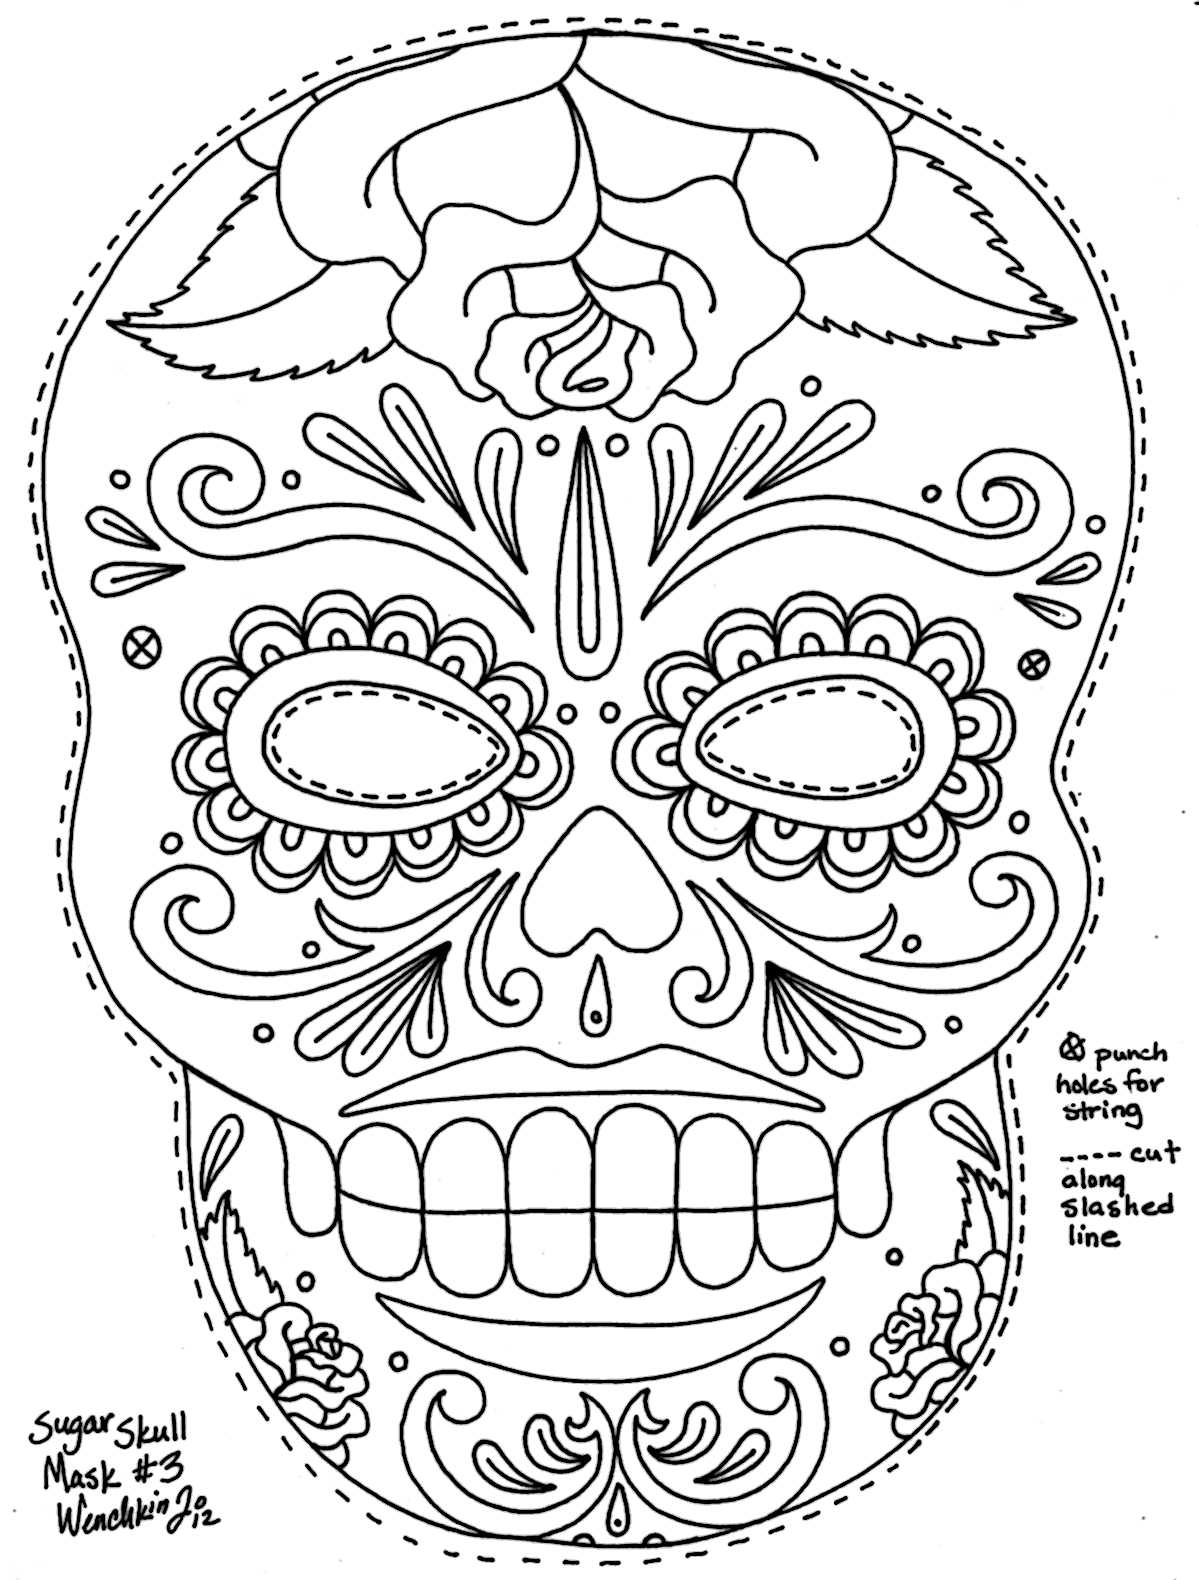 sugar skull coloring pages printable free printable skull coloring pages for kids coloring sugar skull pages printable